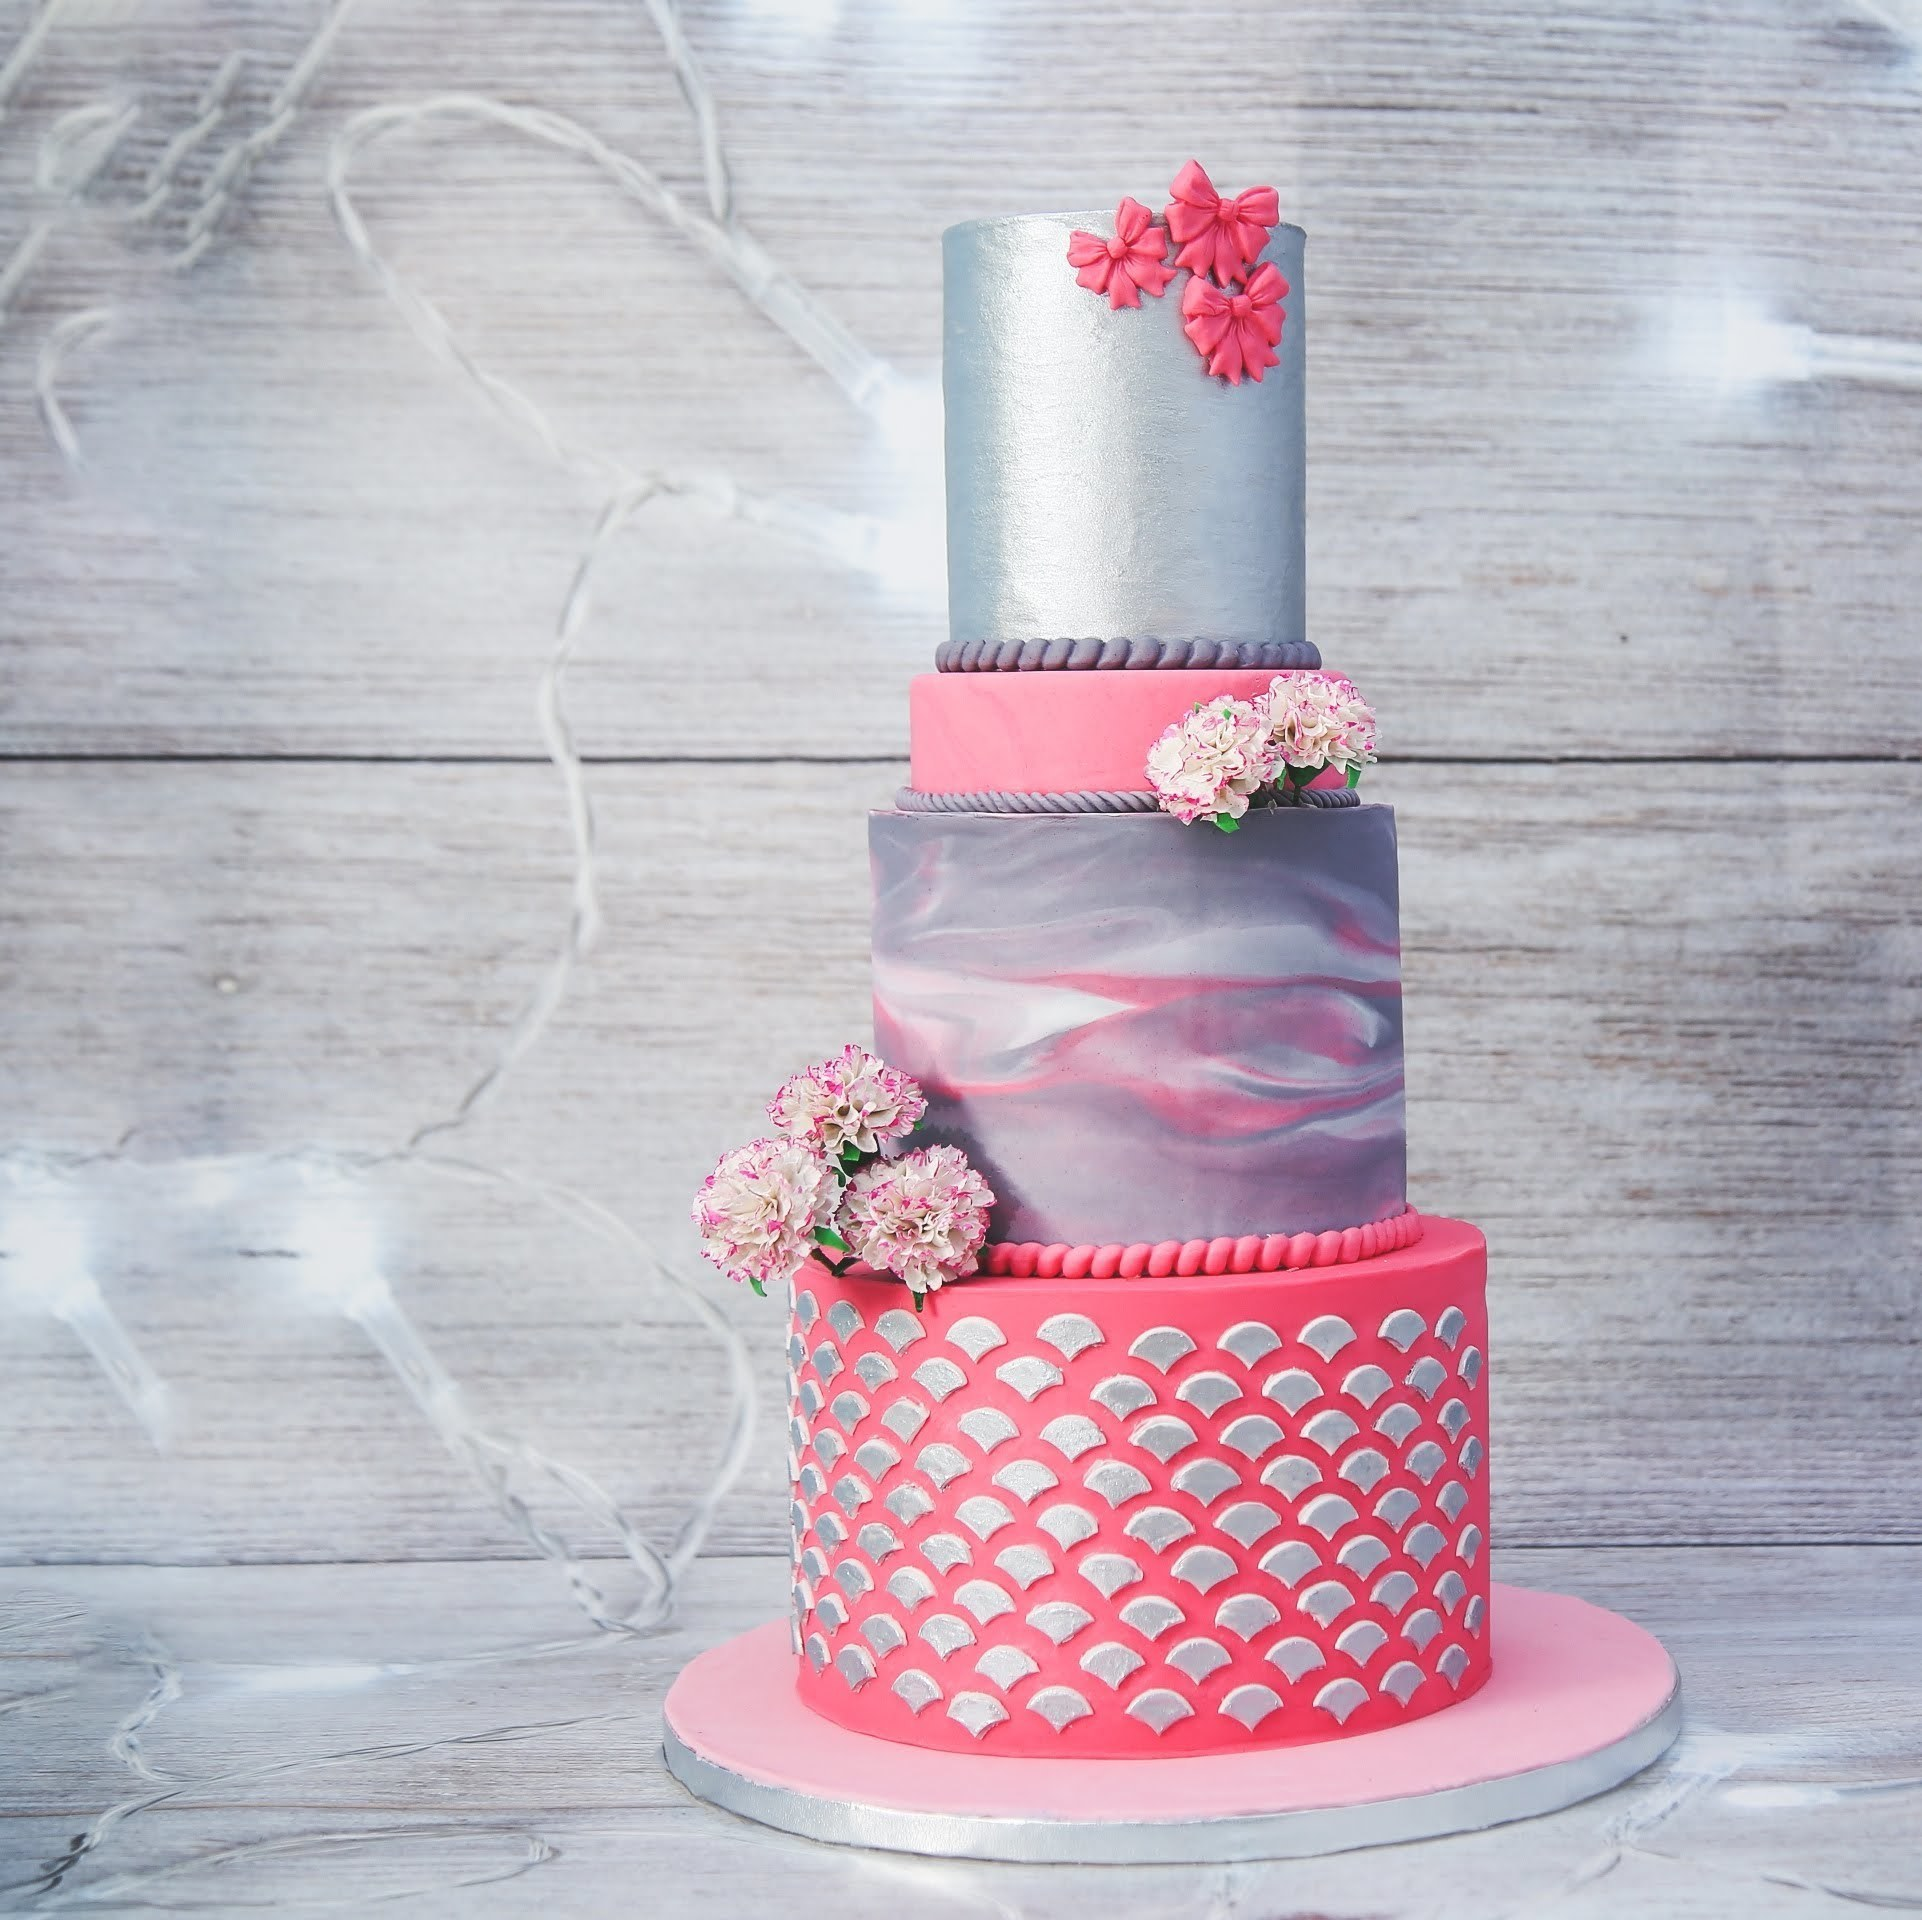 Light pink and silver fondant wedding cake